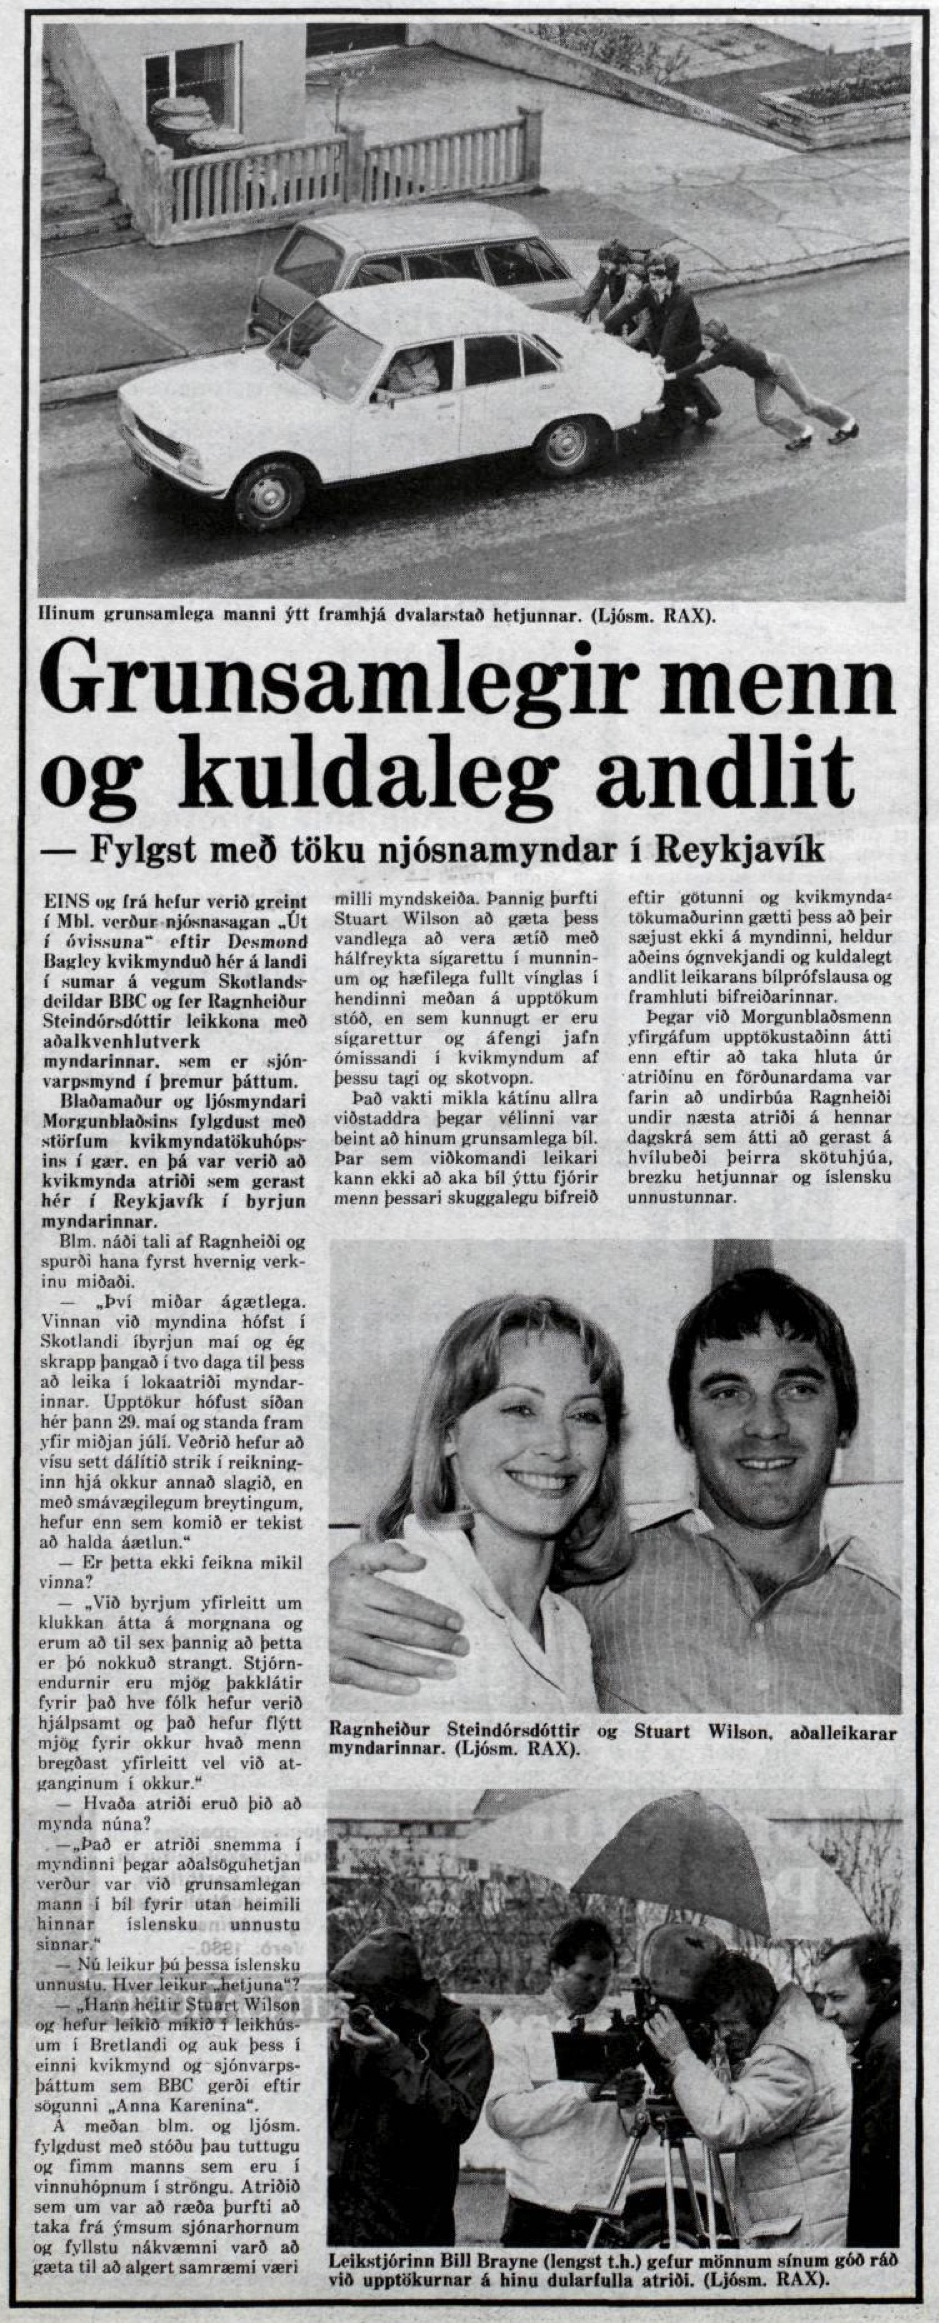 Desmond Bagley's Running Blind Icelandic media article from Visir 10th June 1978.